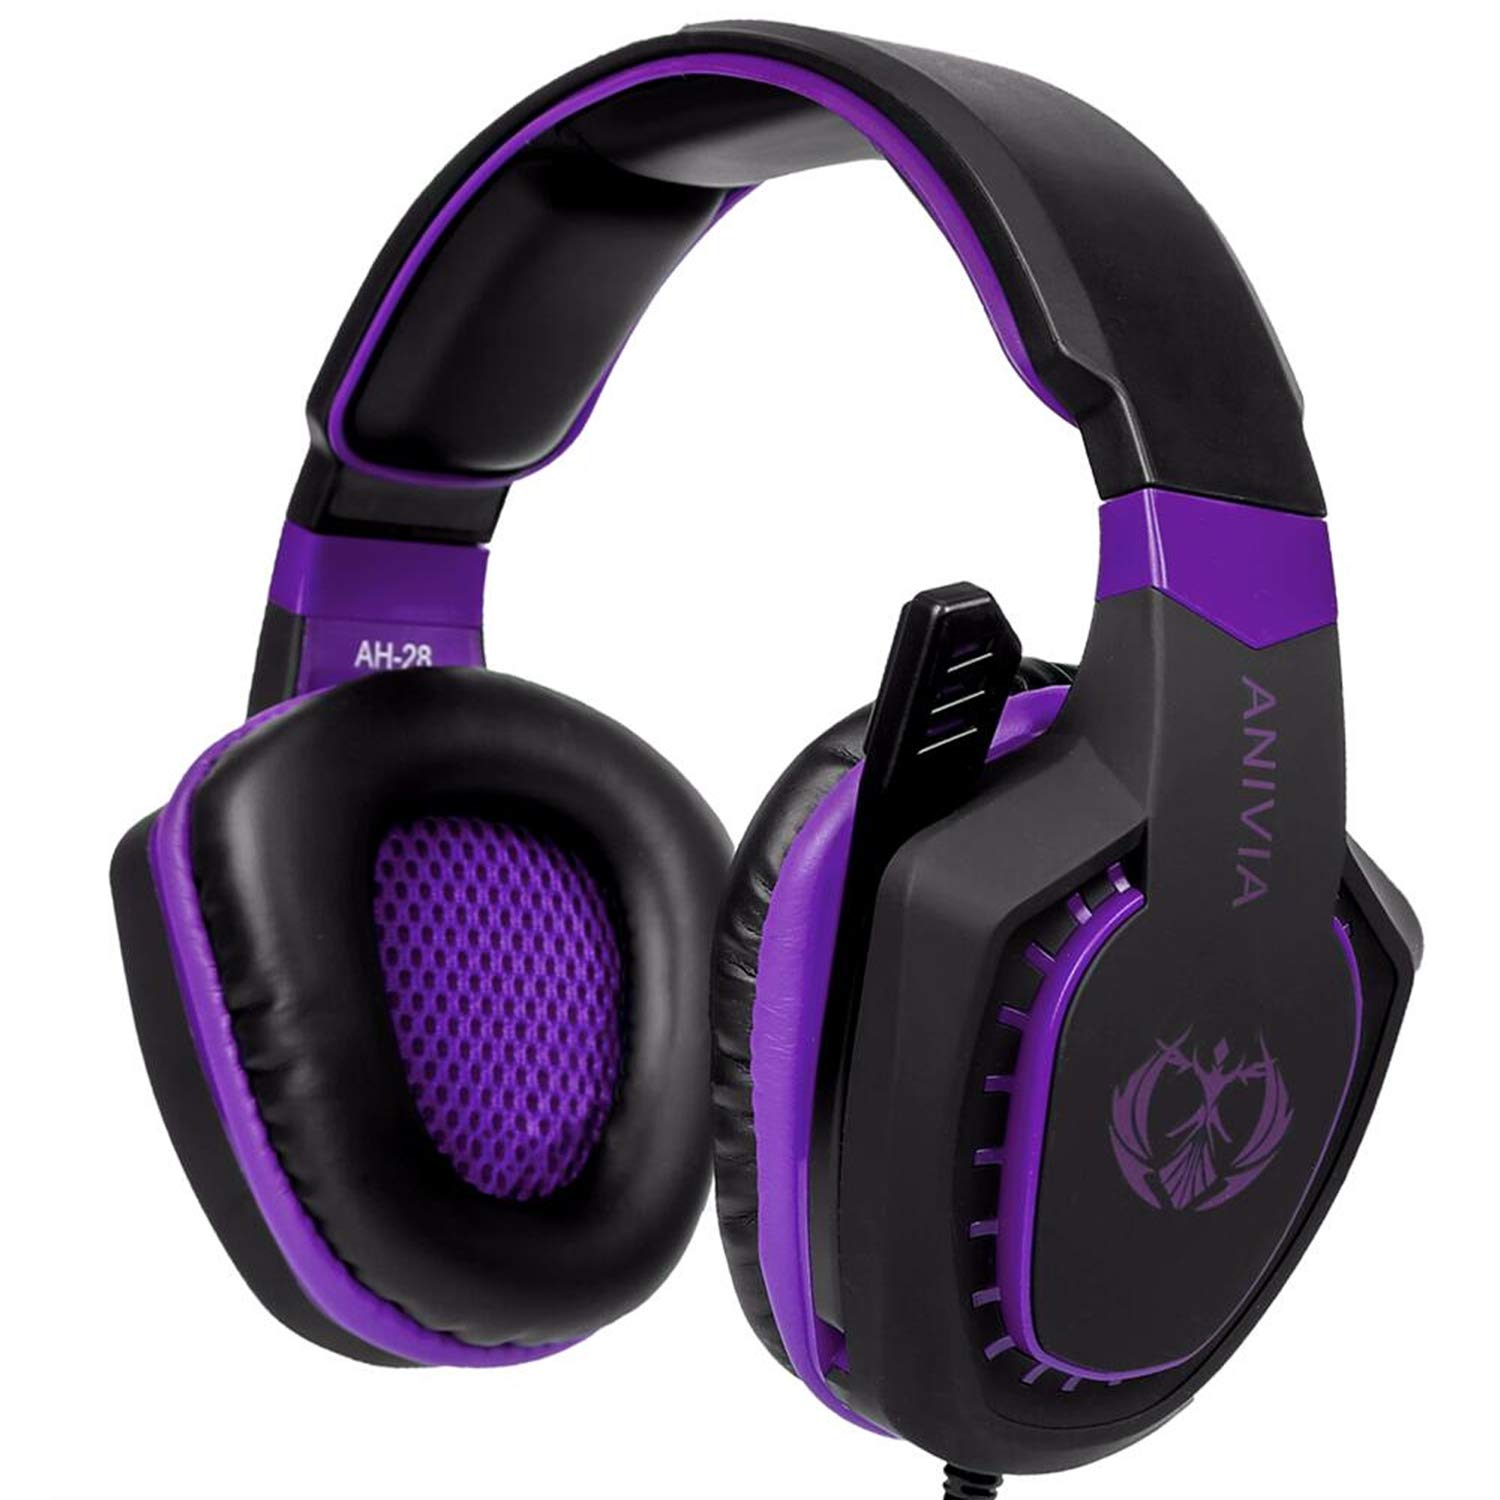 Anivia AH28 Gaming Headset Xbox One PS4 PC, Noise Isolating Over Ear Headphones with Mic, Volume Control, Bass Surround, Soft Memory Earmuffs for Laptop Mac Phones Nintendo Switch Games-Black Purple by Anivia